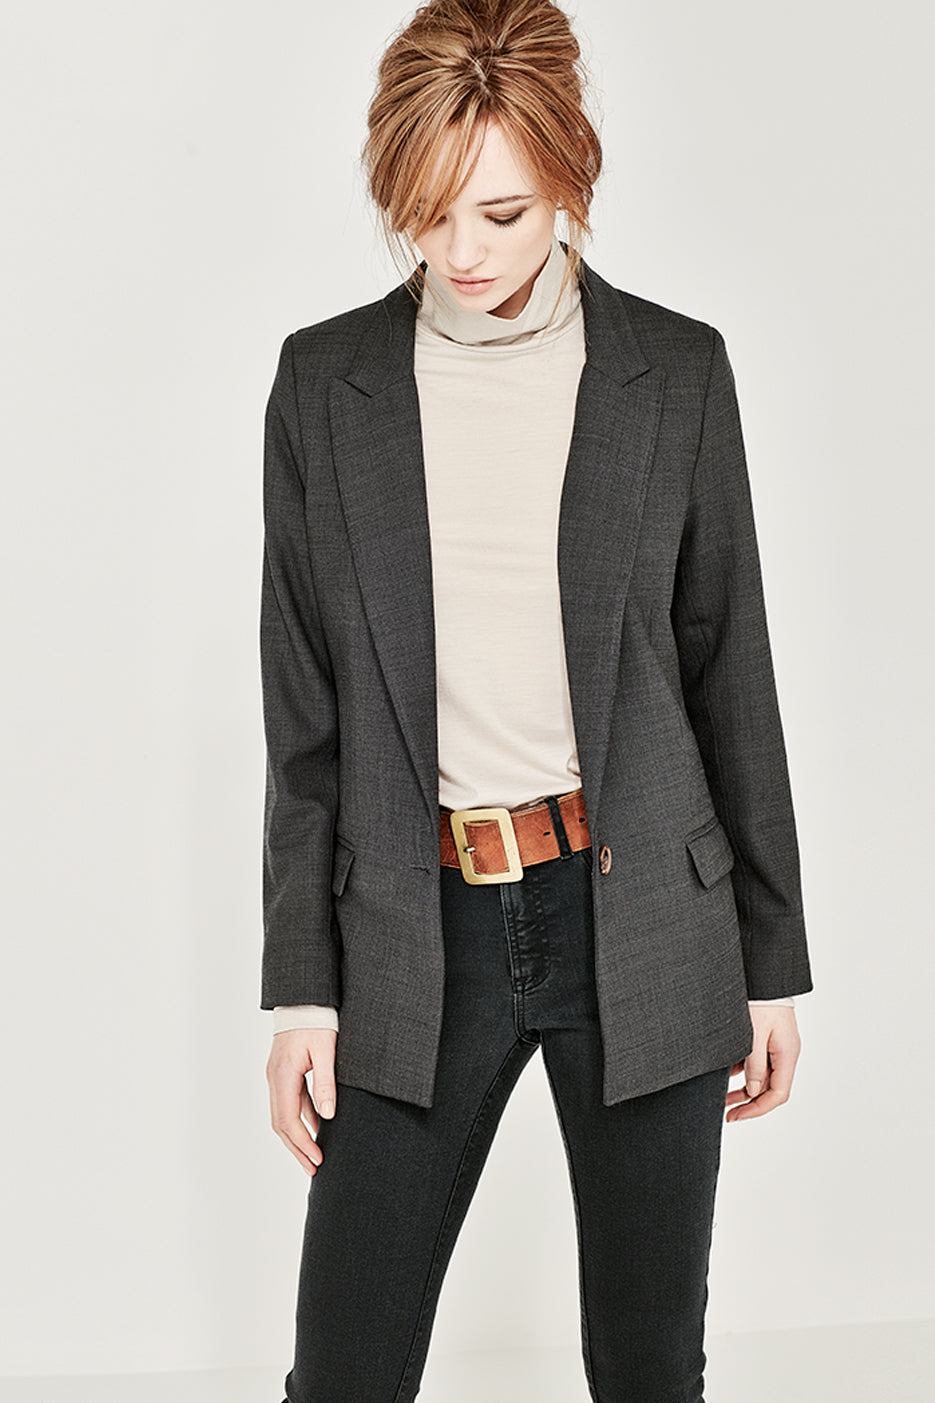 The Madison Jacket in Charcoal